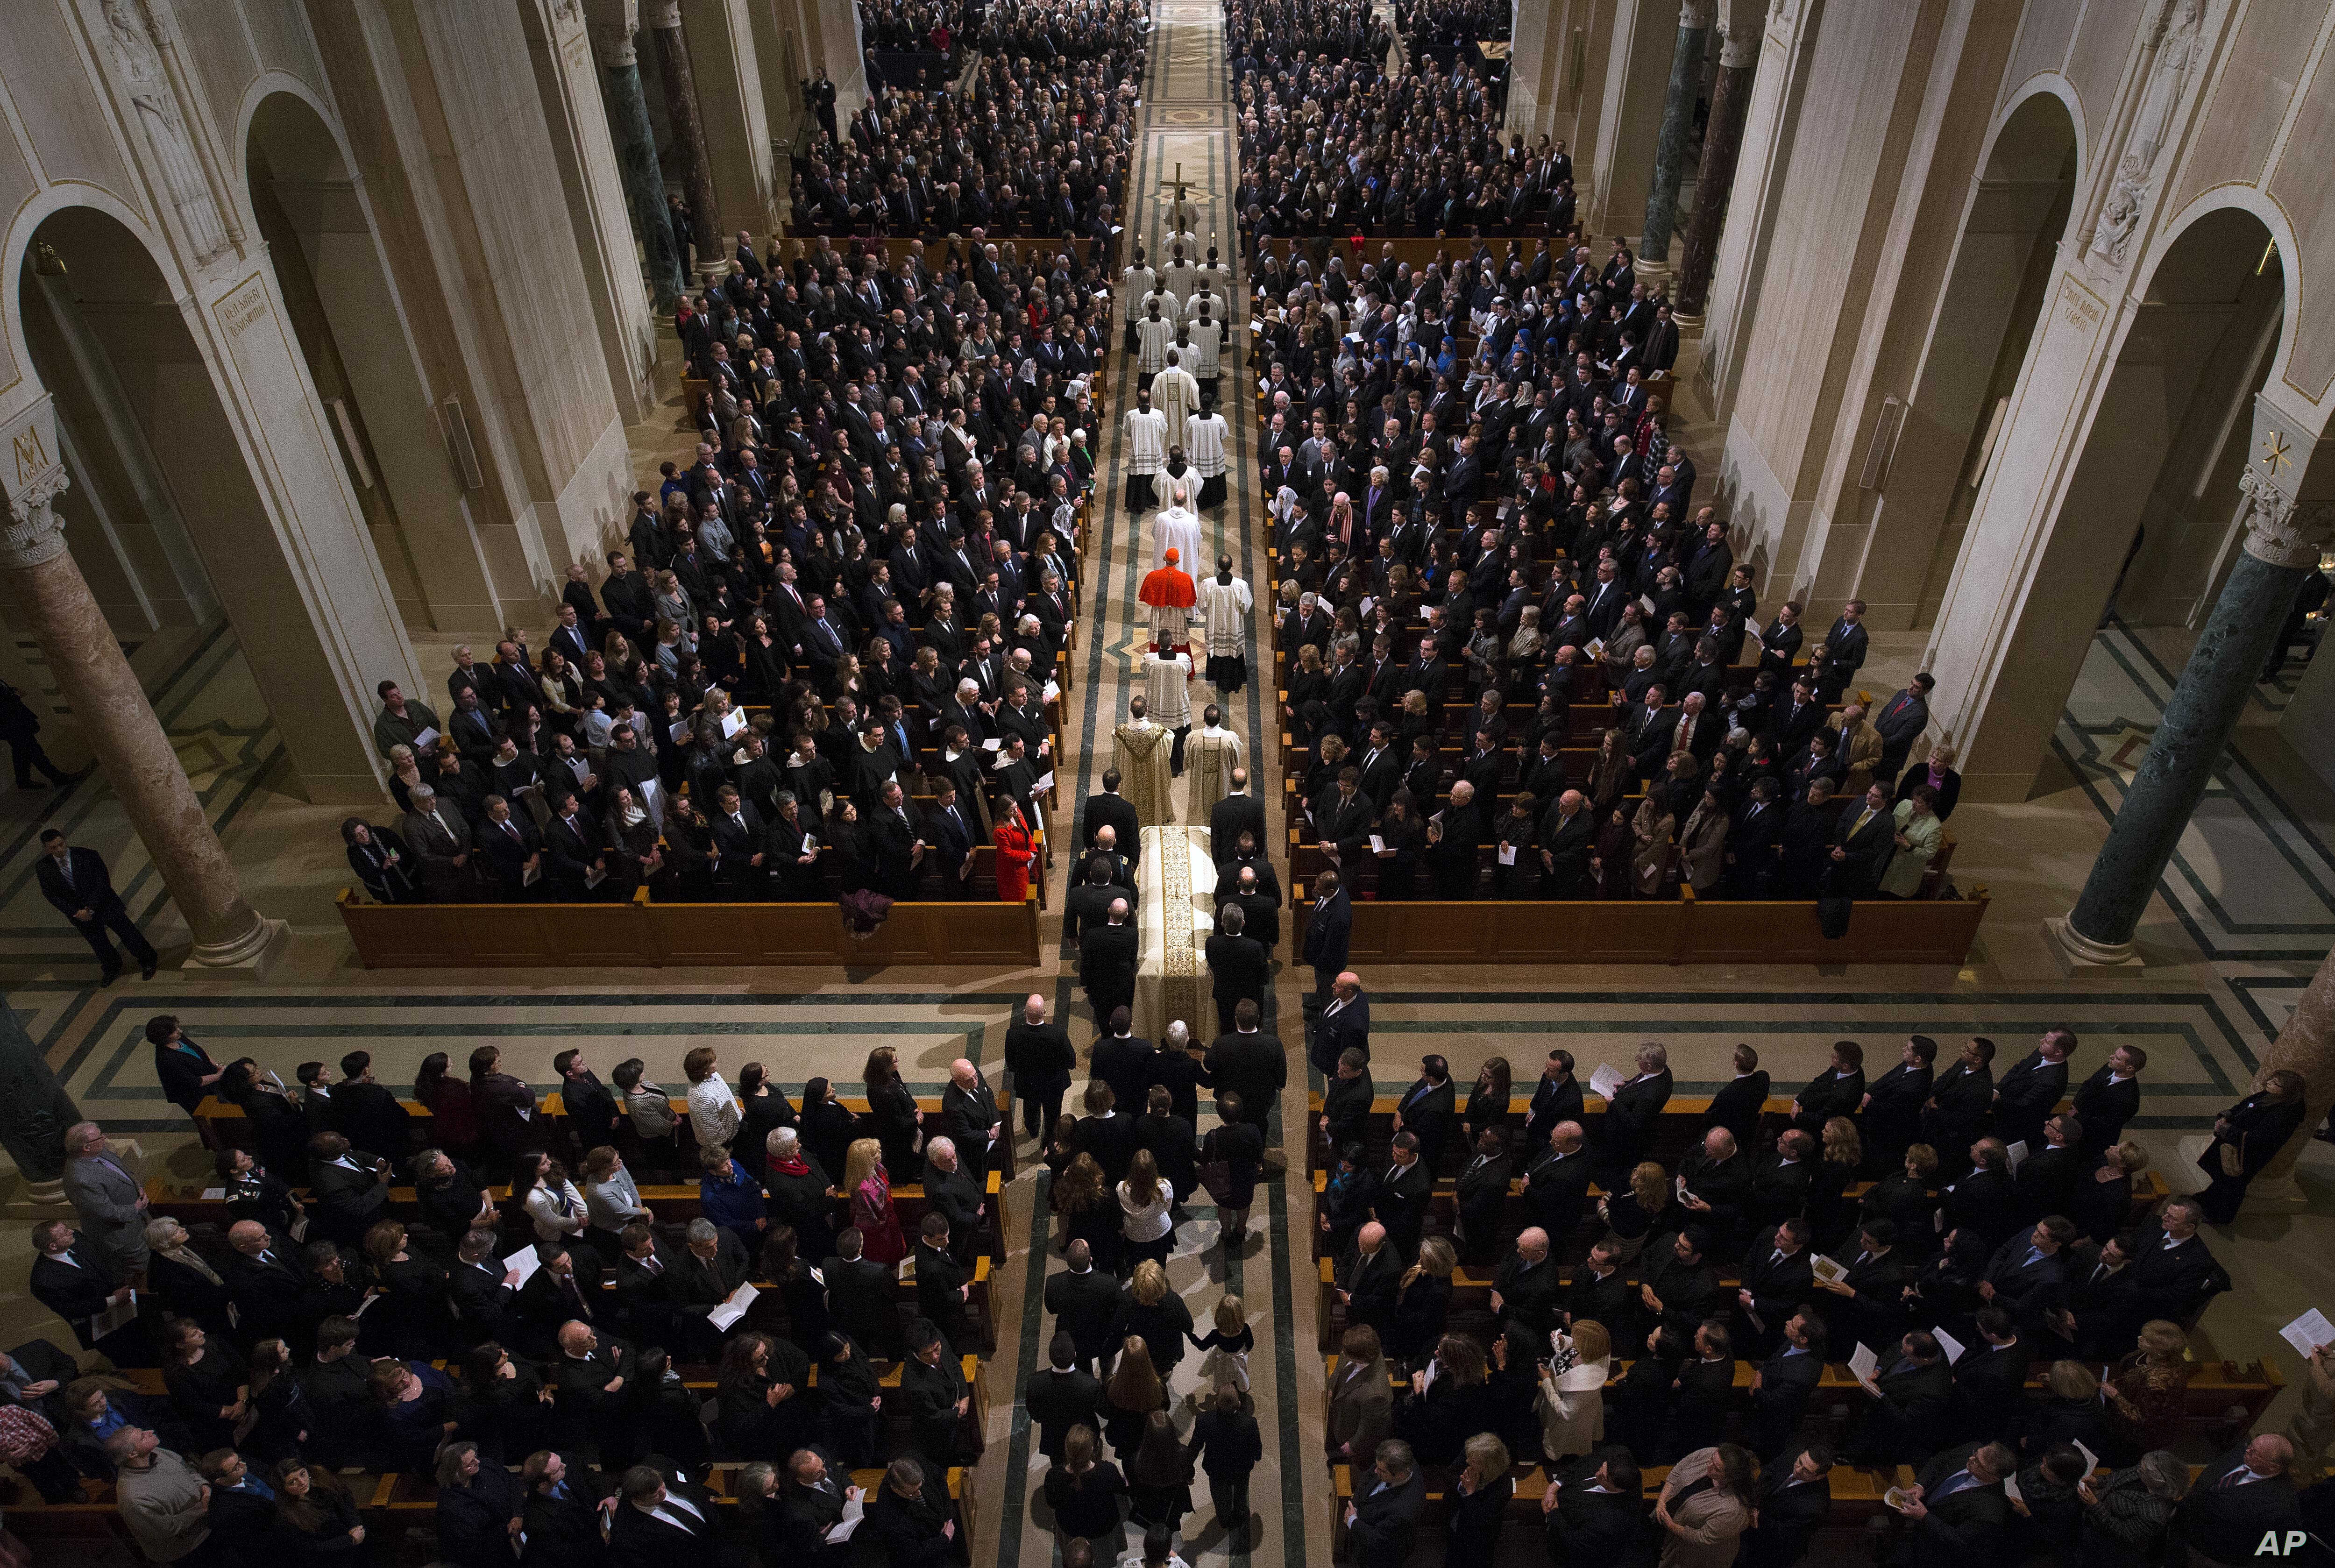 The procession for the funeral mass for the late Supreme Court Associate Justice Antonin Scalia at the Basilica of the National Shrine of the Immaculate Conception in Washington, Feb. 20, 2016.